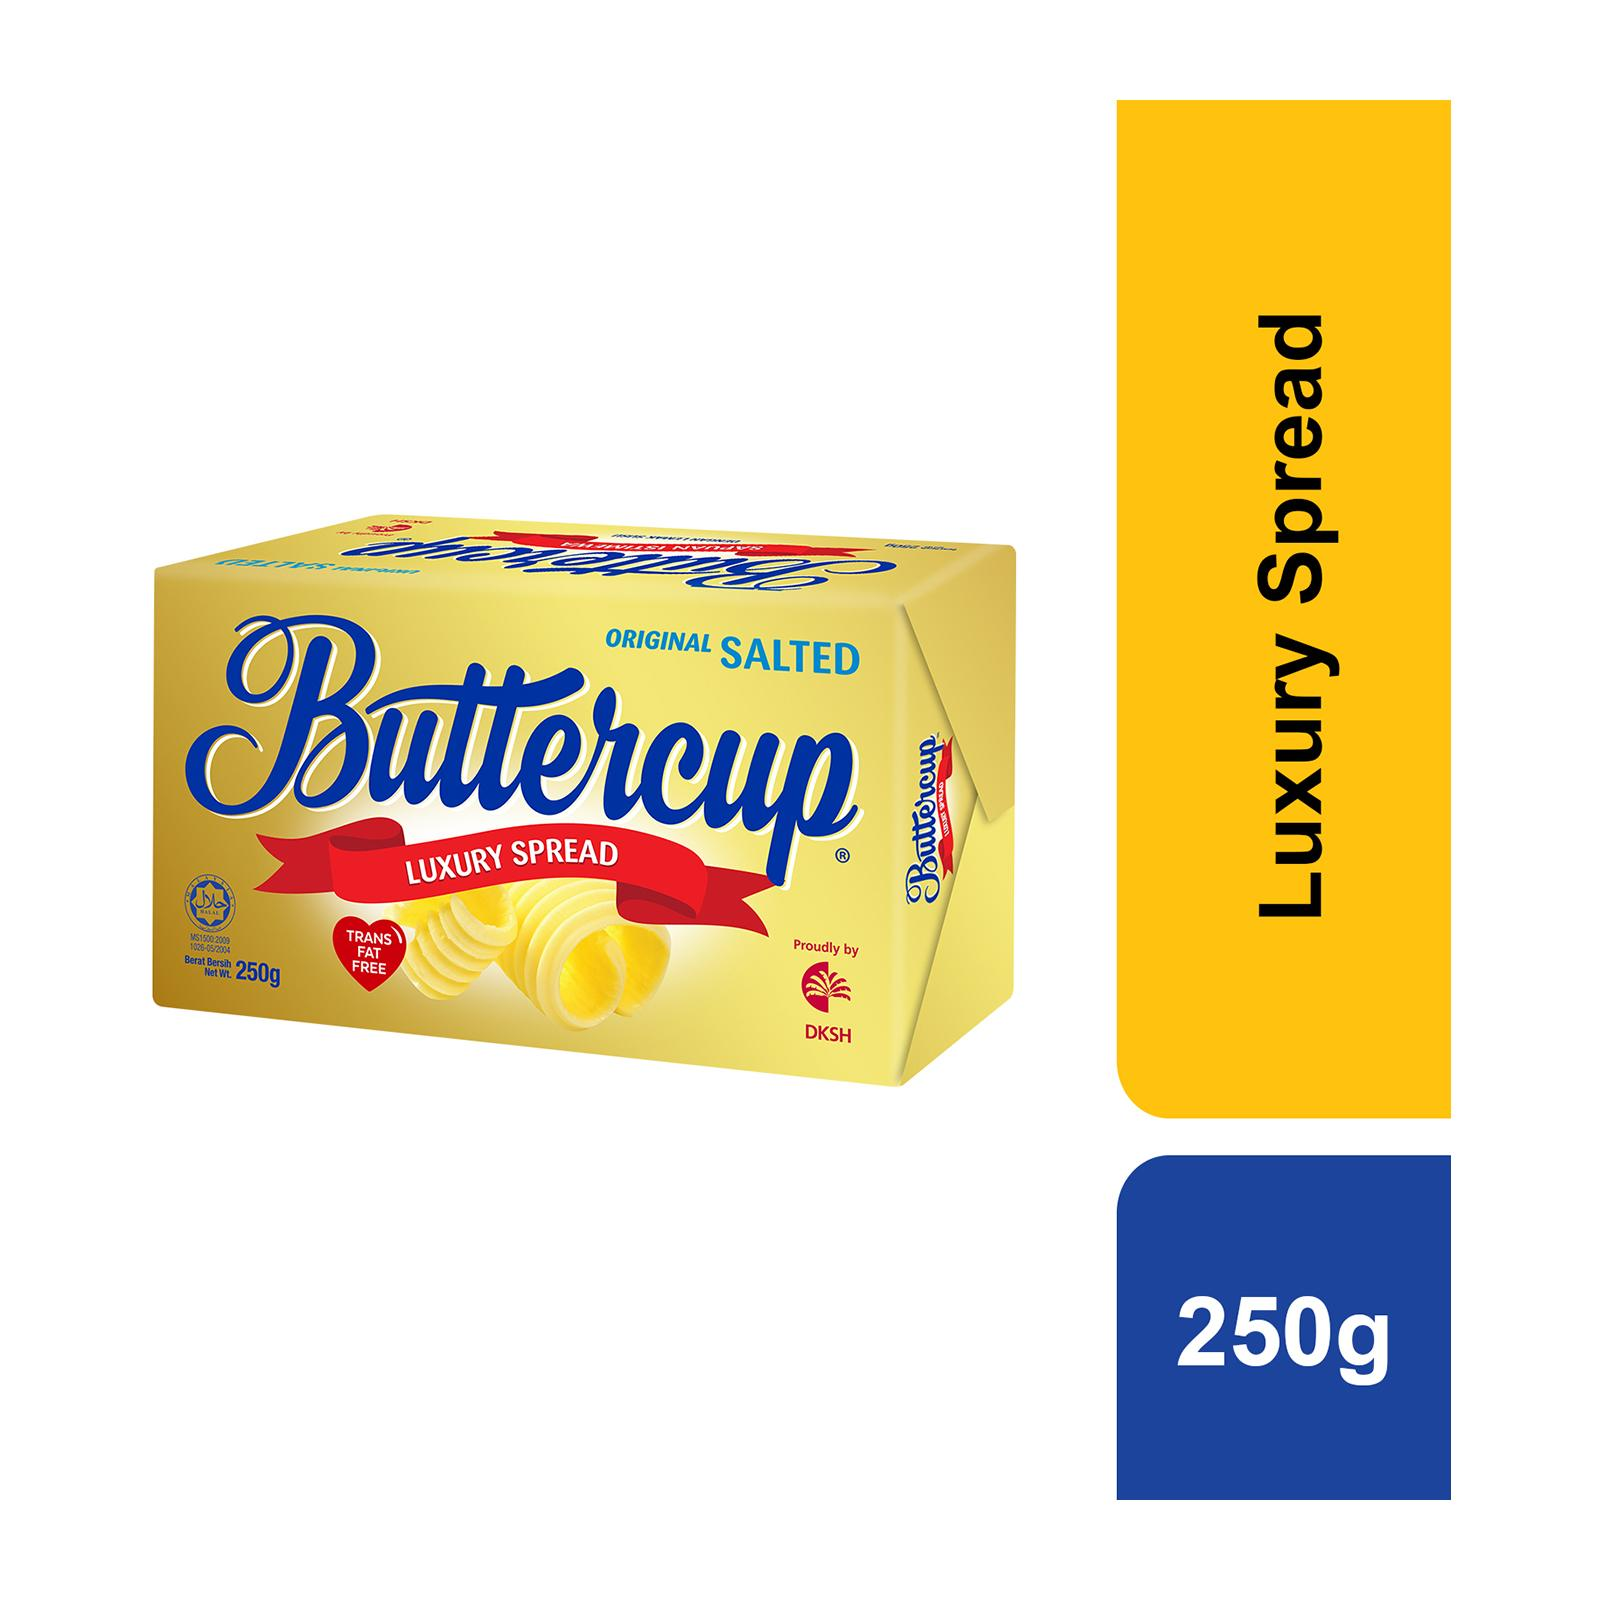 BUTTERCUP Butter Spread Block - Original Salted 250g